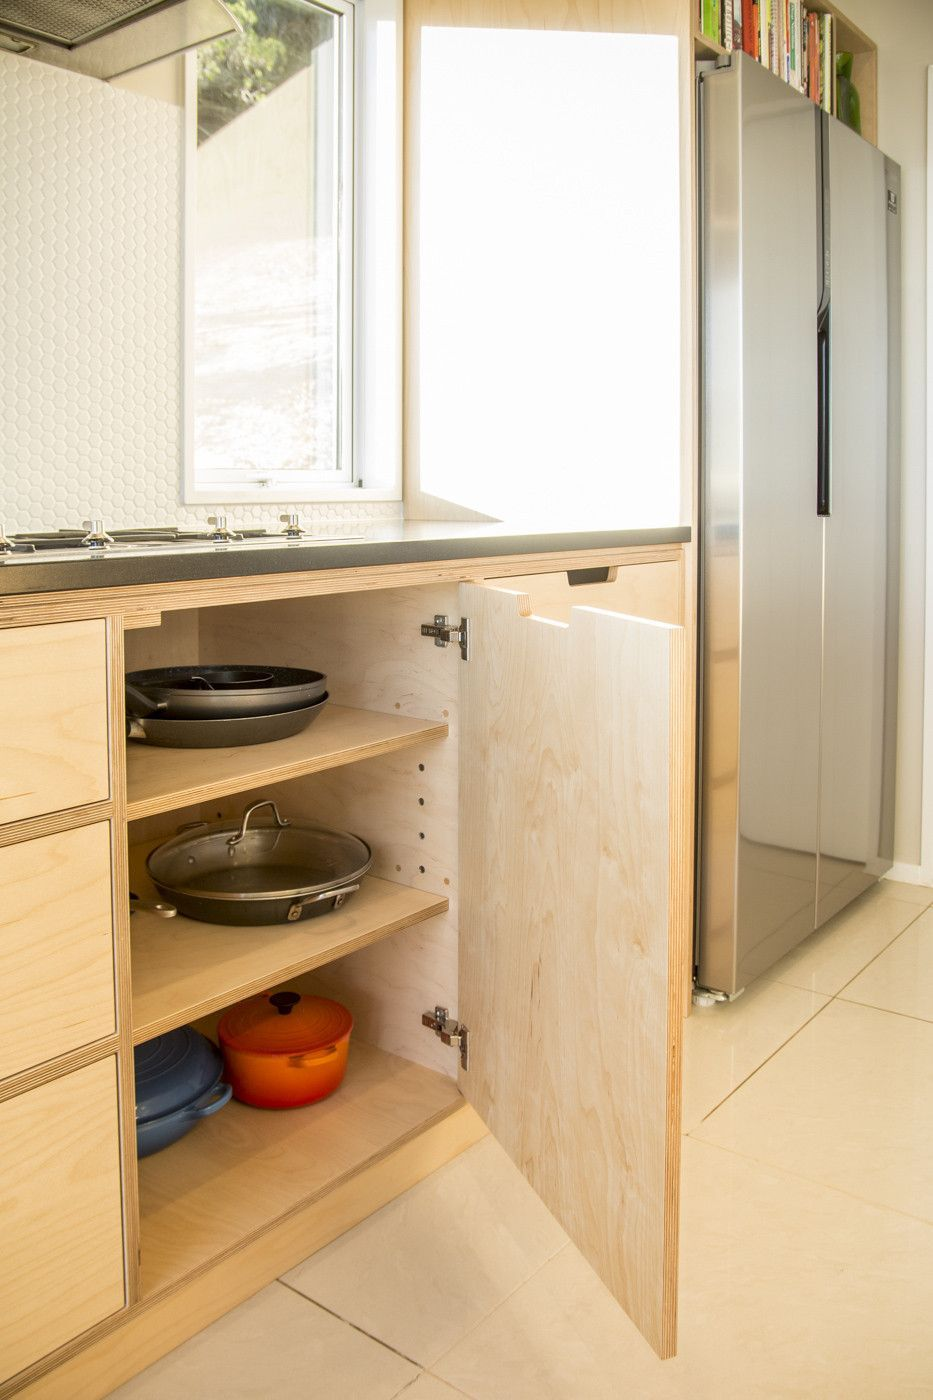 Best 7 Kitchen Design Ideas For Your Home Beautiful Plywood Kitchen Farmhouse Kitchen Cabinets Budget Kitchen Remodel